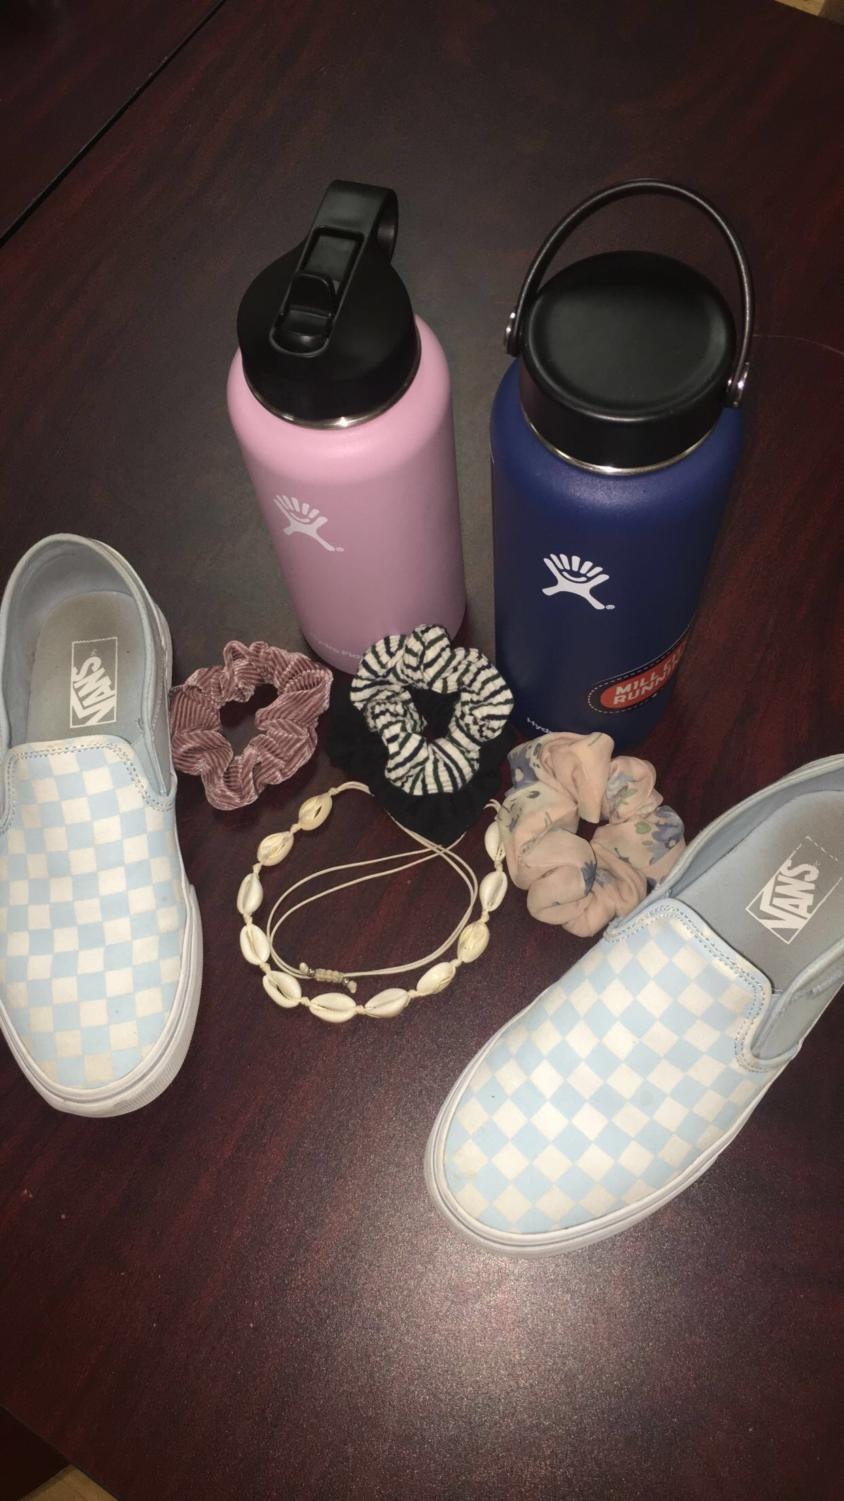 A collection of VSCO girl items